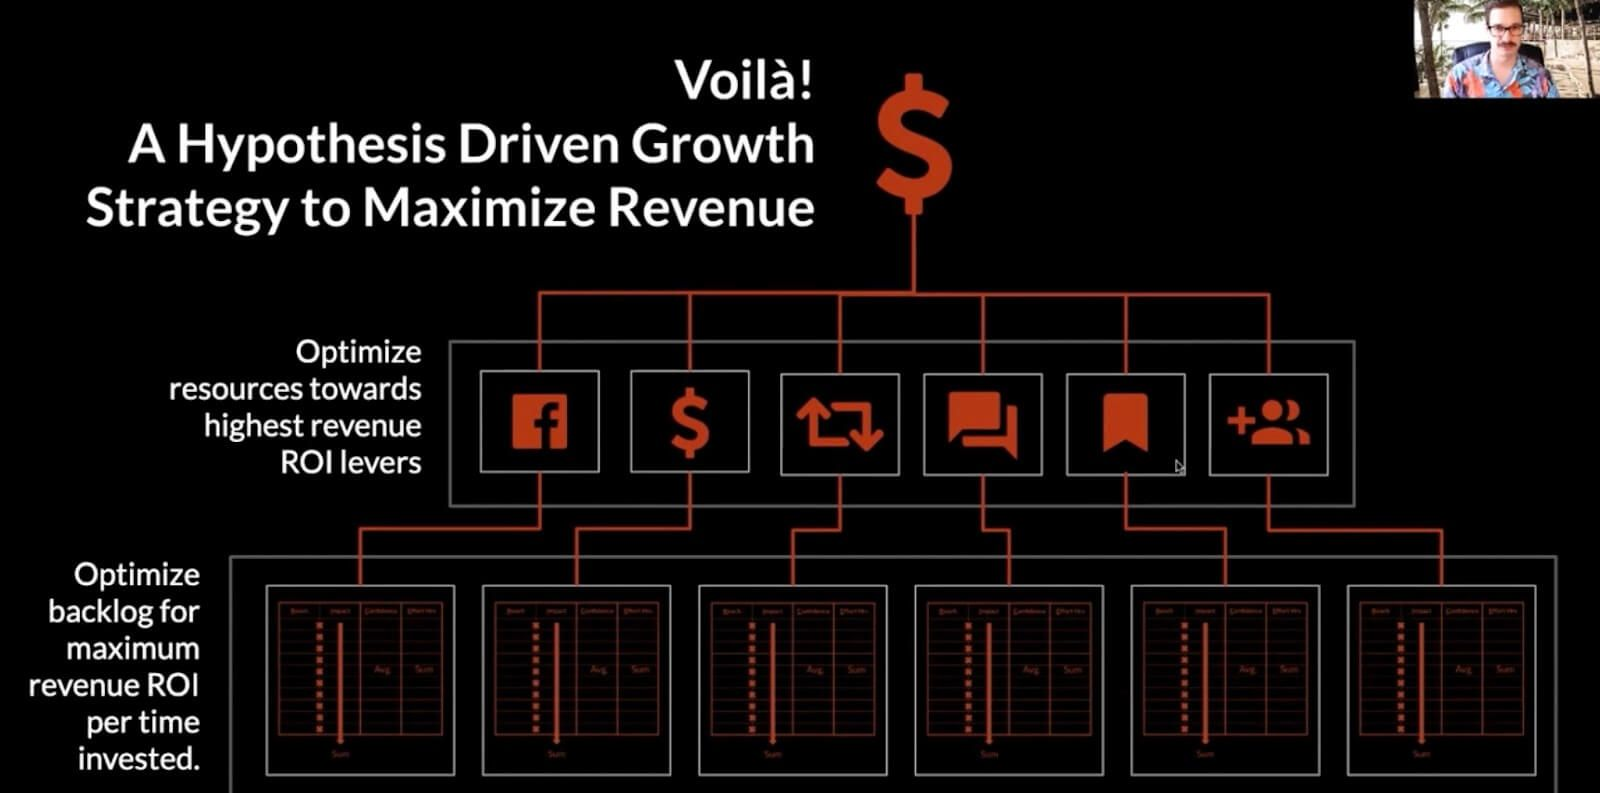 driving revenue and driving growth.